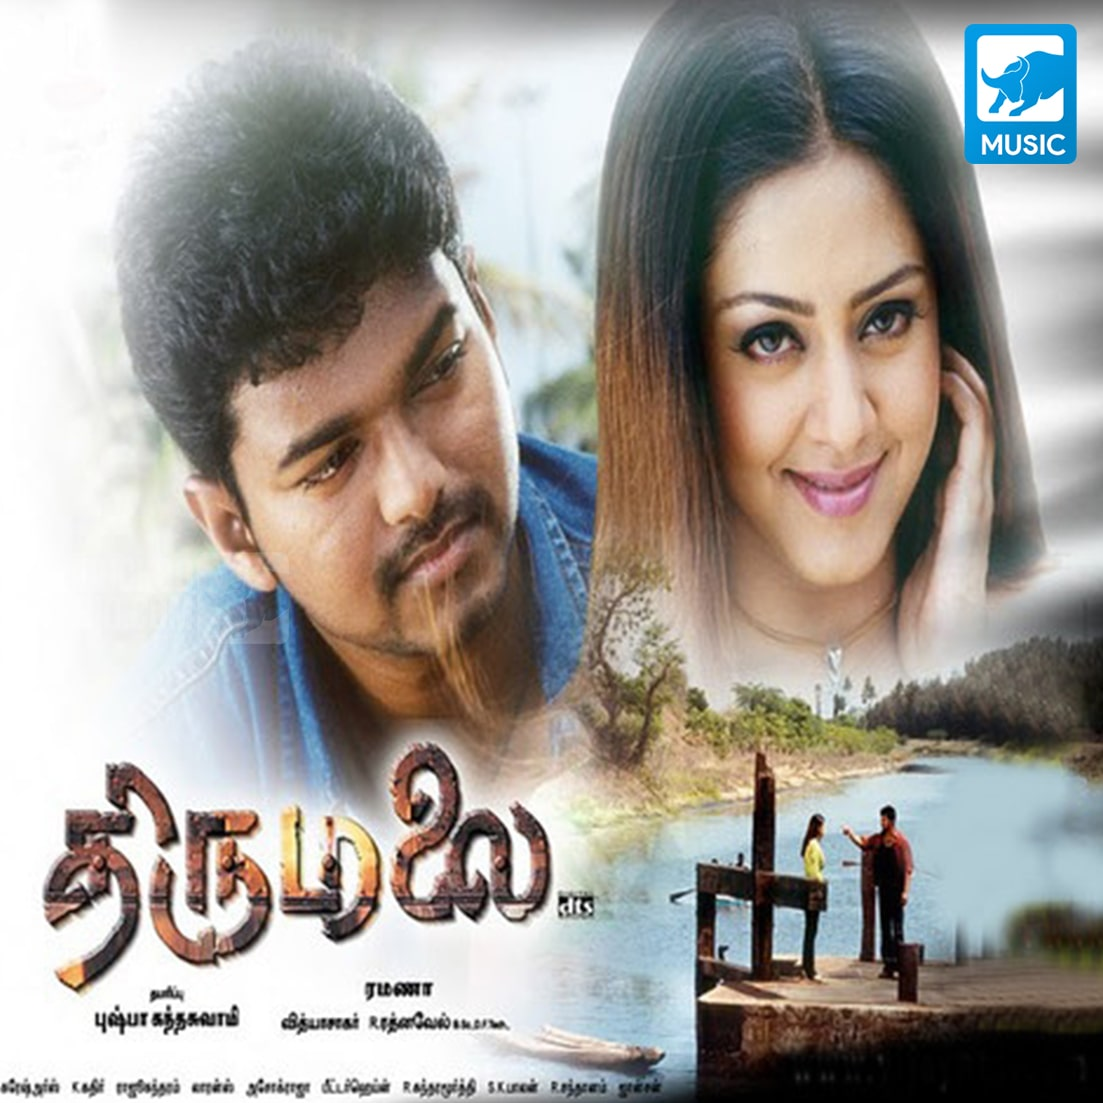 Thirumalai Thalapathy Vijay Movie